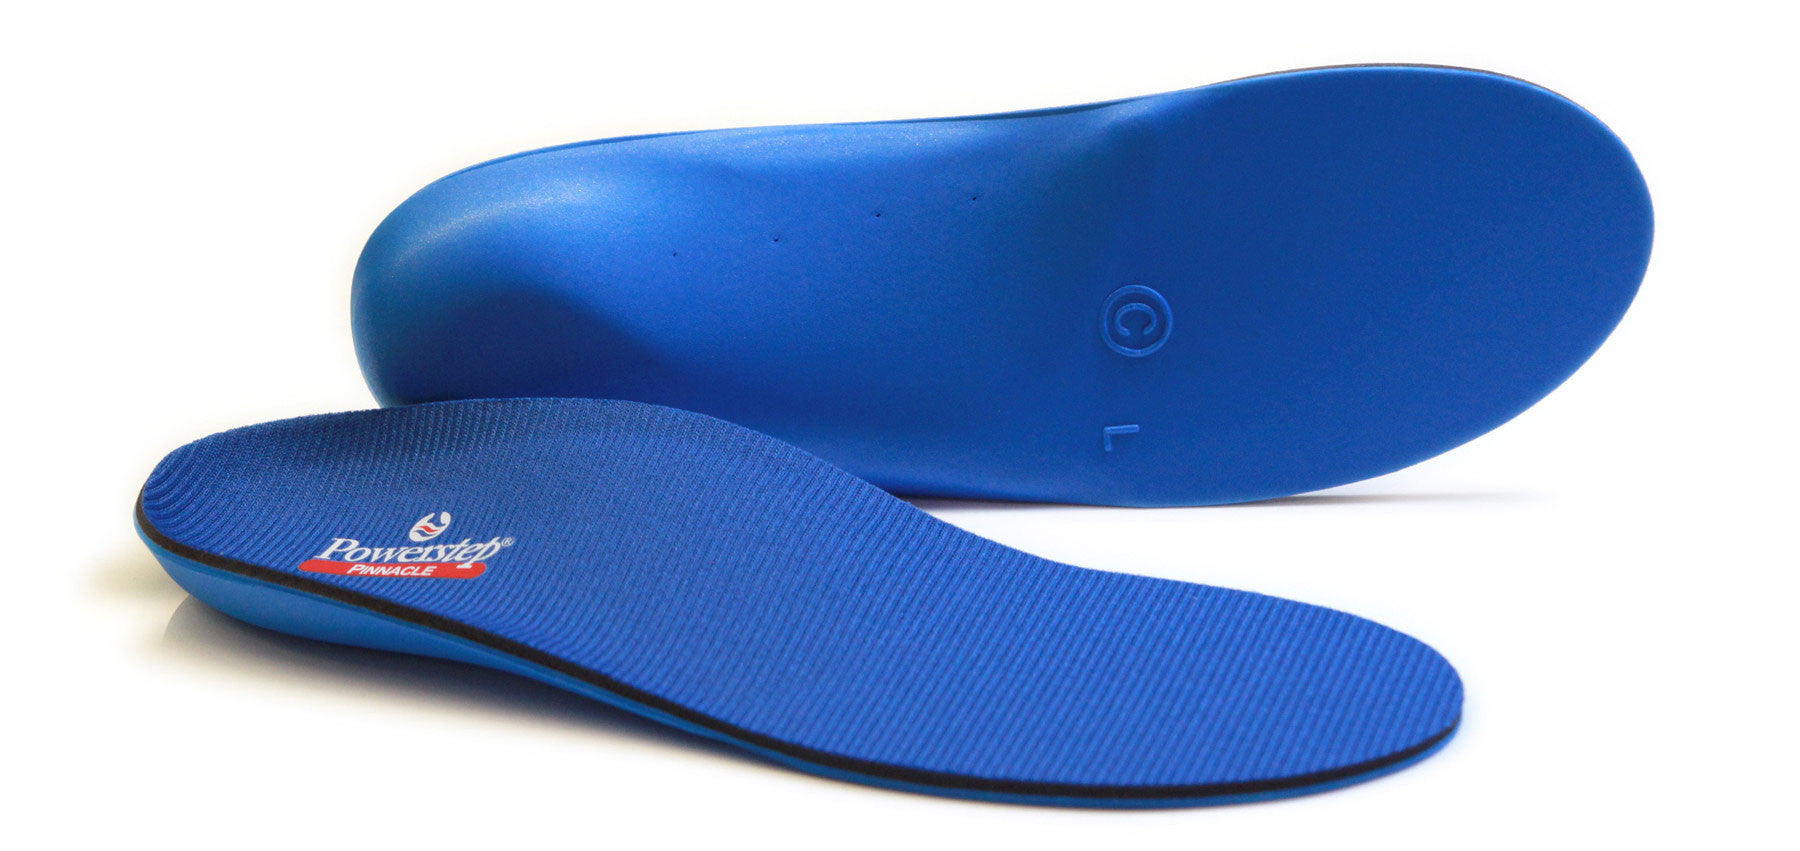 Powerstep Shoe Inserts Reviews